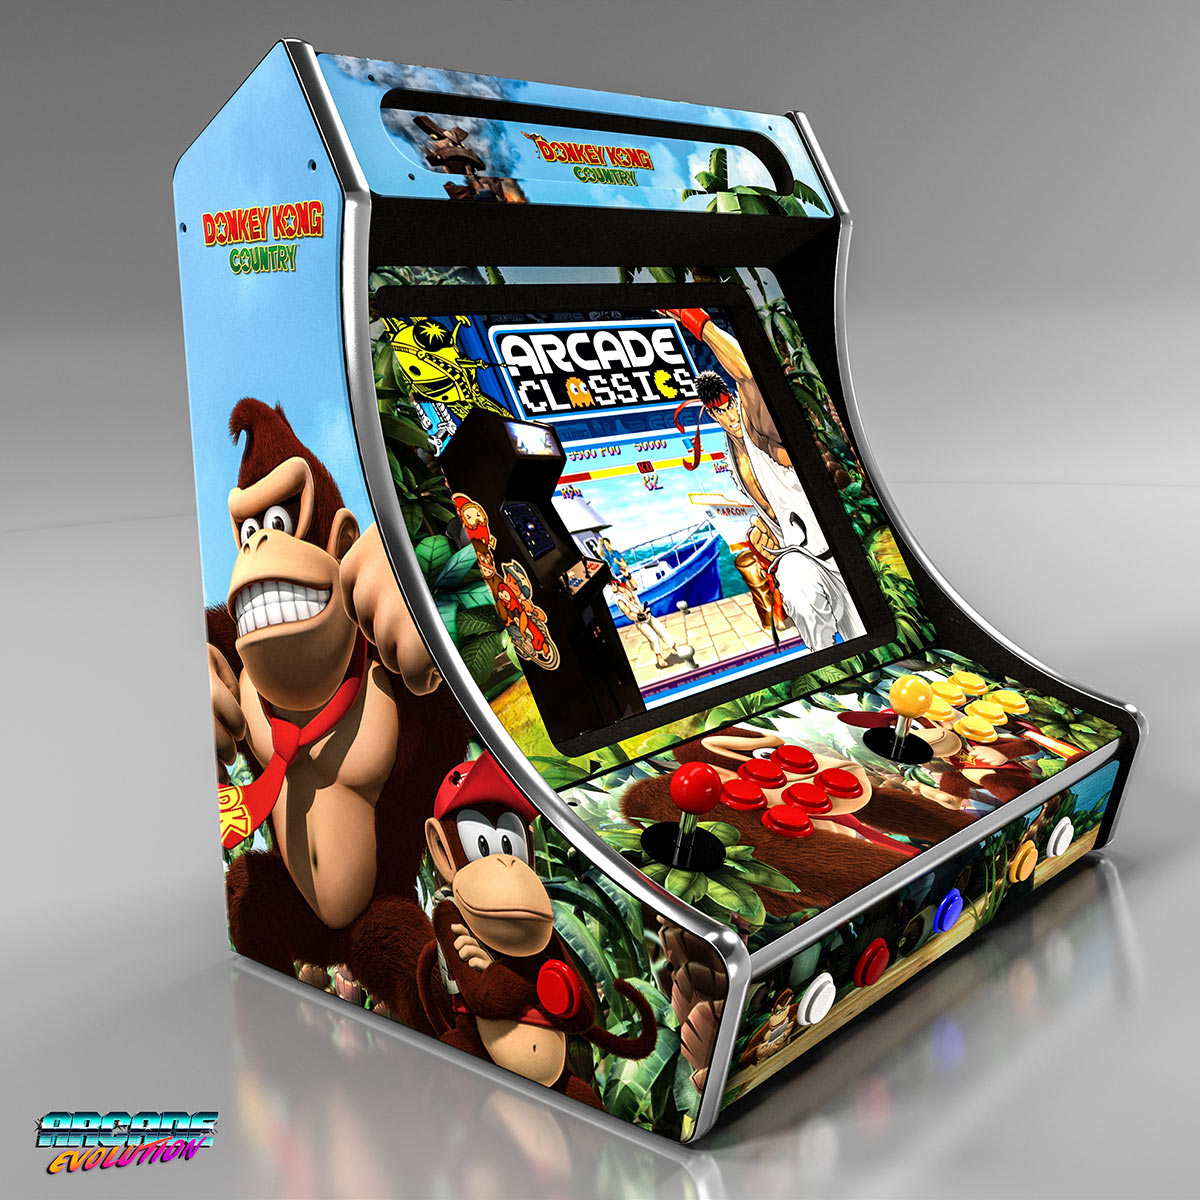 Buy Arcade Machines Fully Configure With 1000's Of Games You